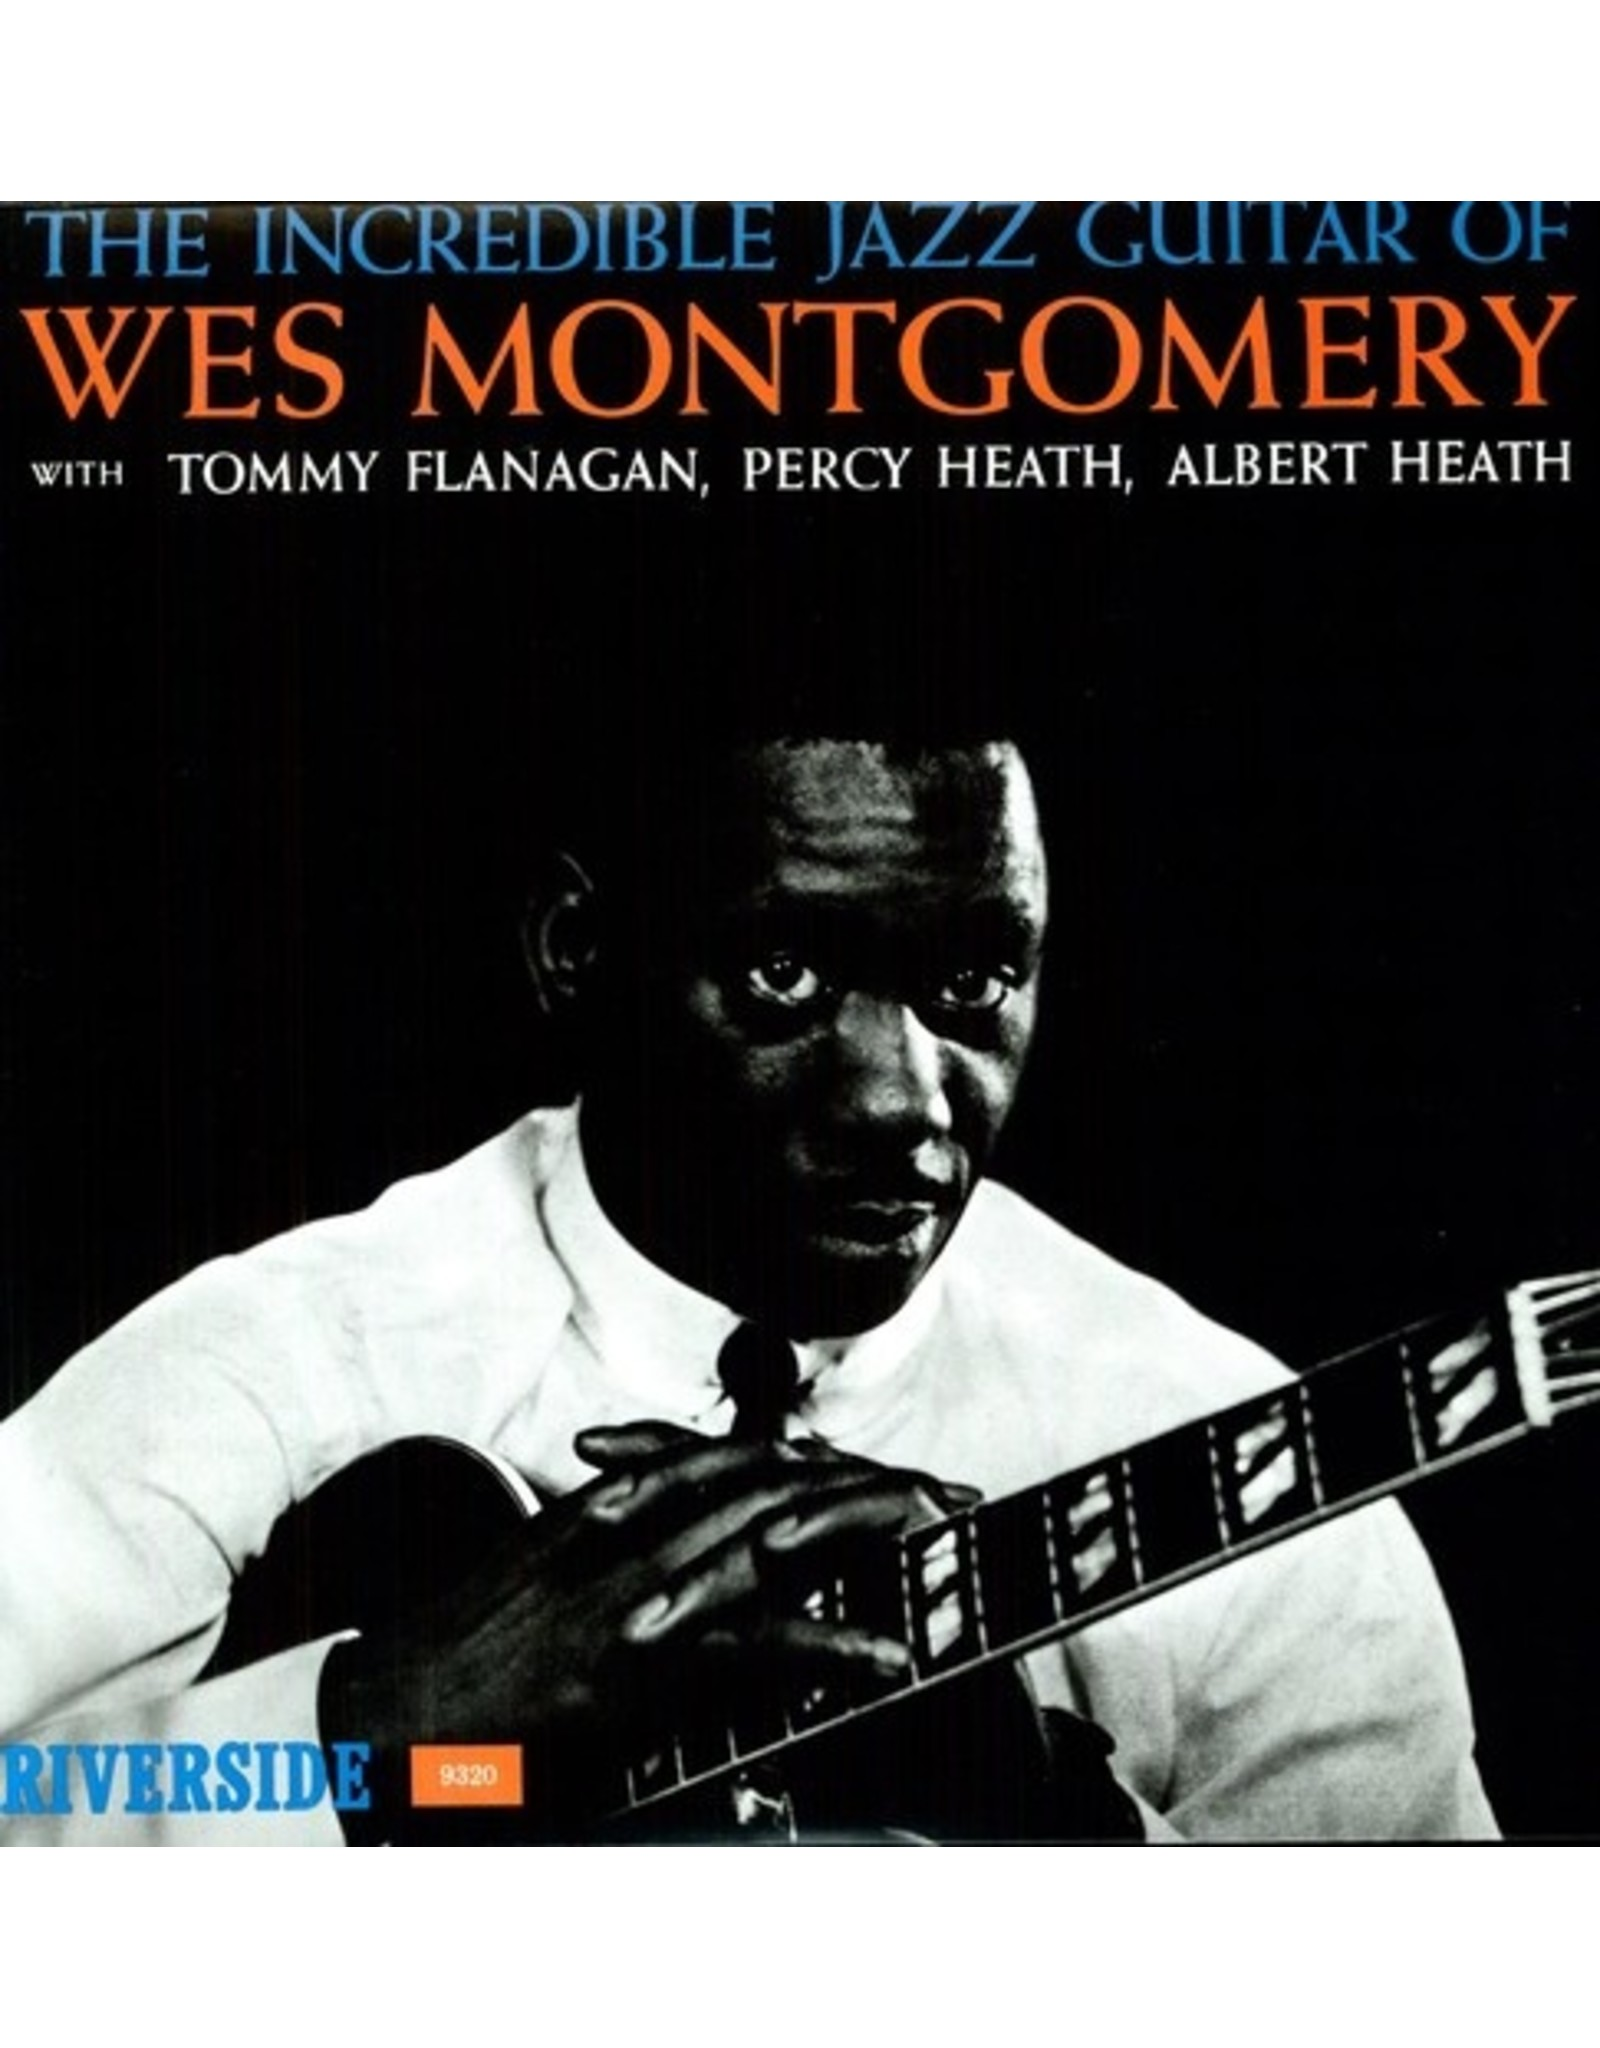 New Vinyl Wes Montgomery - The Incredible Jazz Guitar Of Wes Montgomery LP